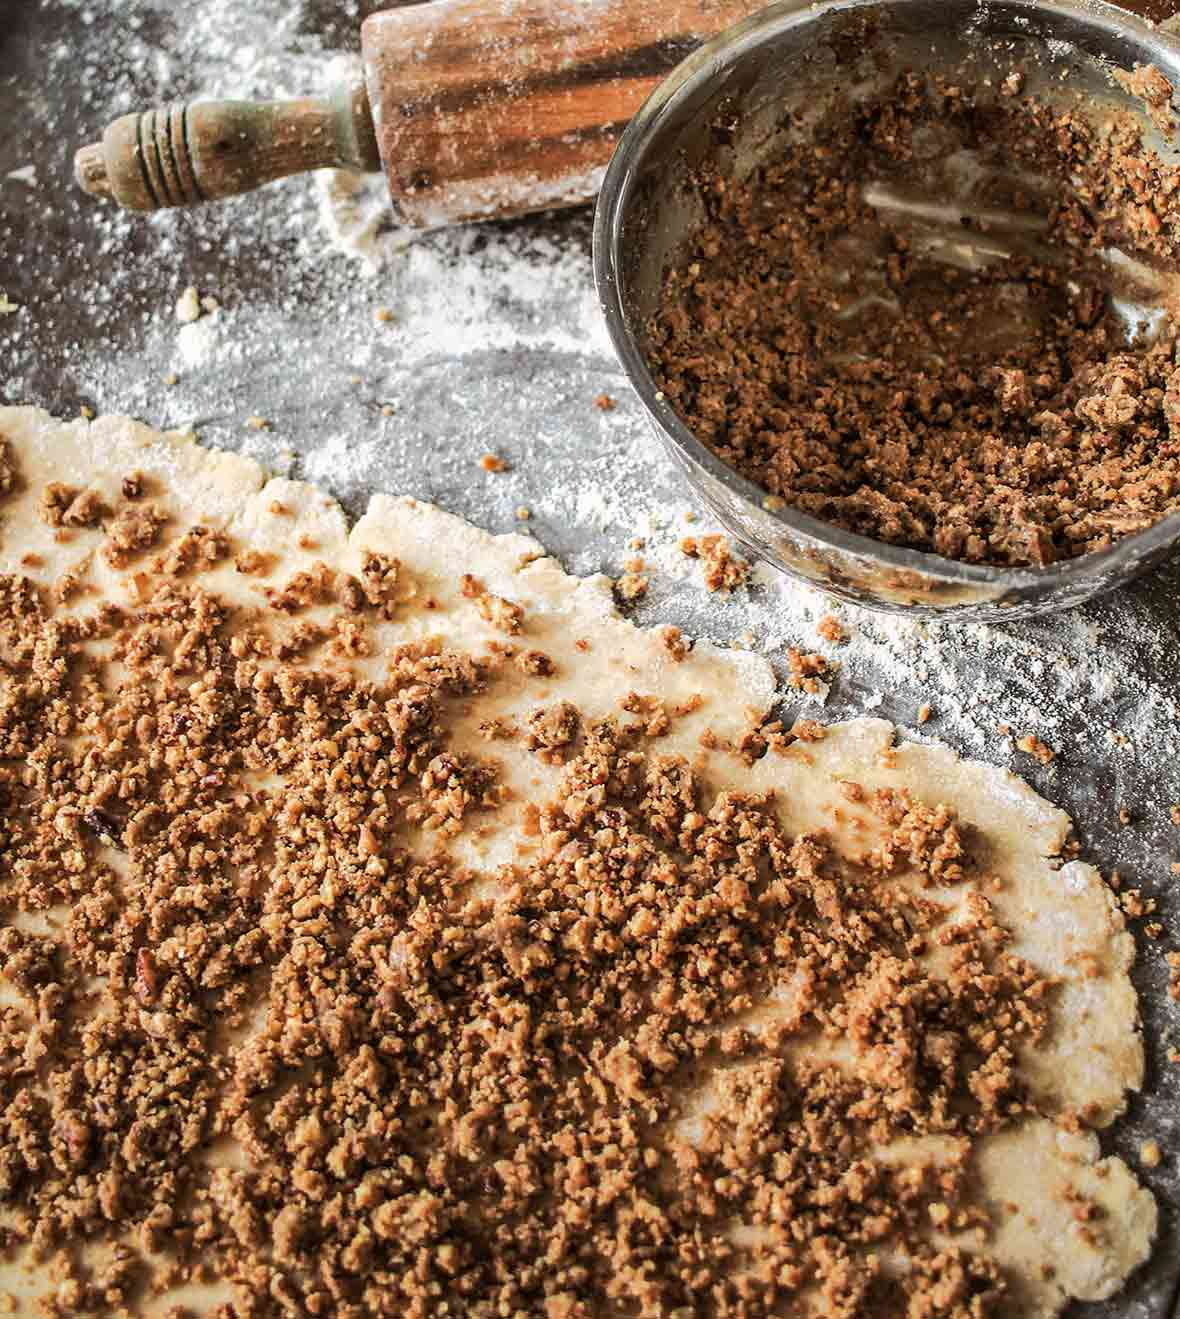 Rugelach dough covered with pecan pie filling and a bowl of filling nearby